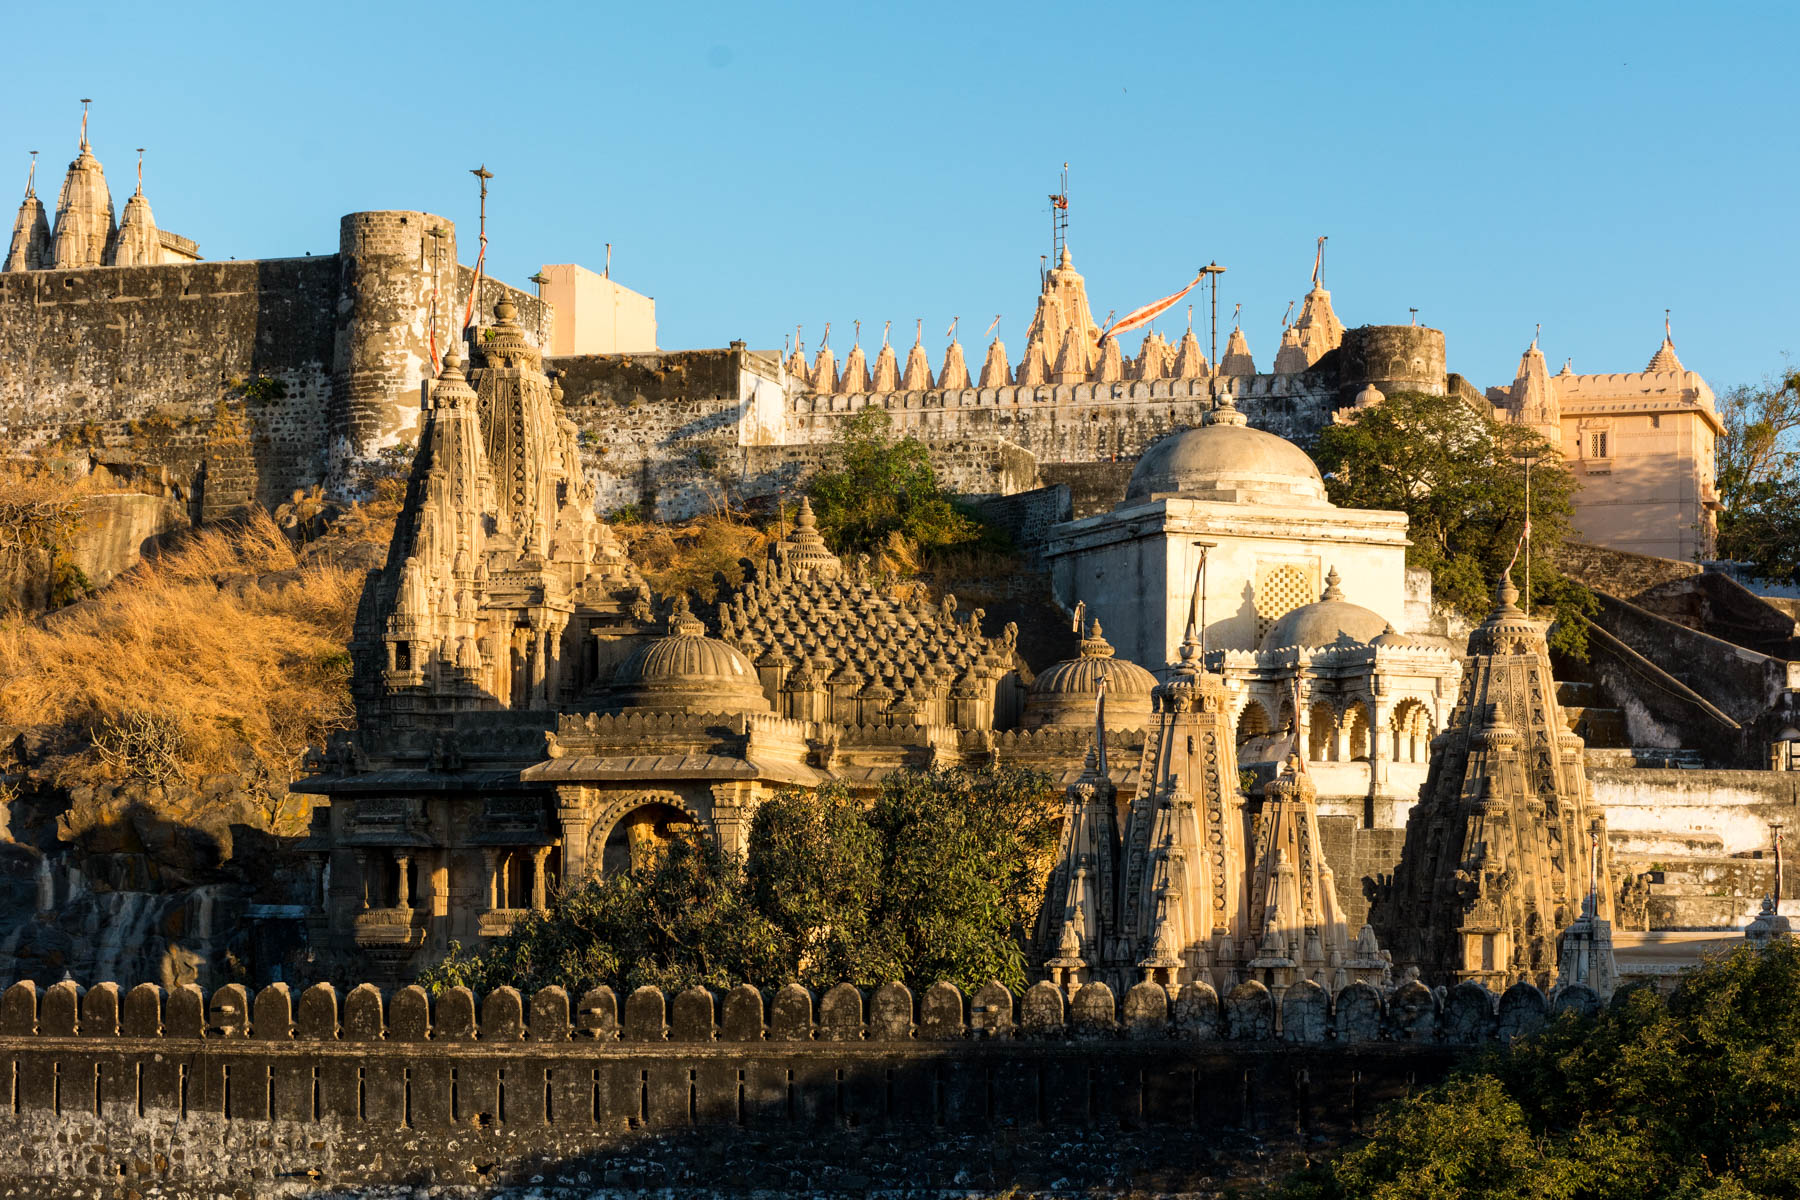 Jain pilgrimage in Palitana, India - Sunrise over the mountain of temples, Shatrunjaya Hill - Lost With Purpose